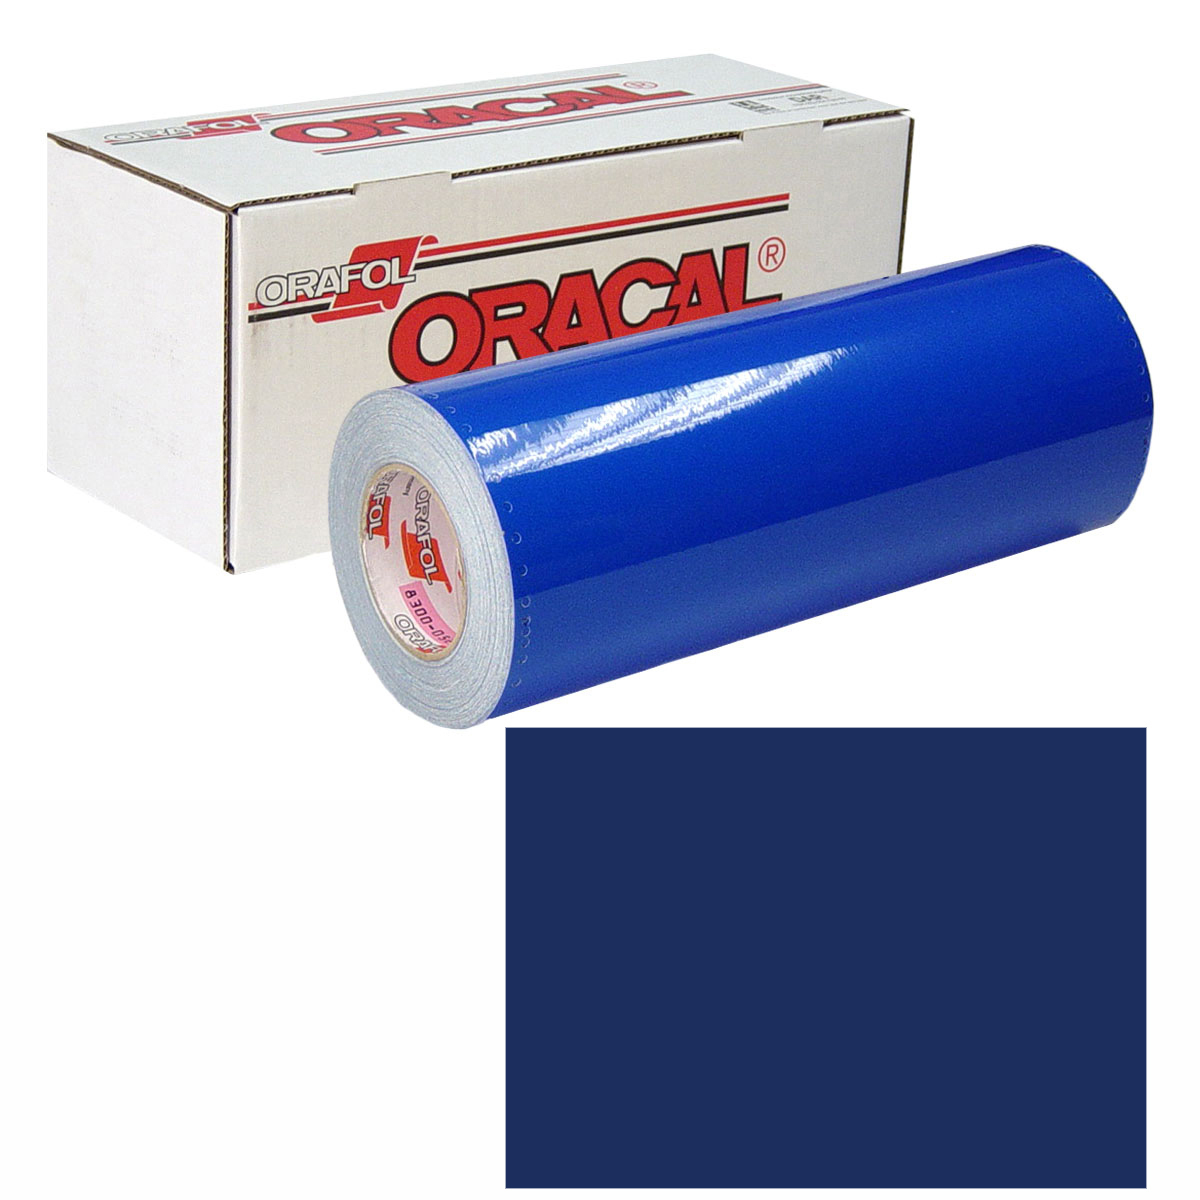 ORACAL 631 Unp 48in X 50yd 050 Dark Blue